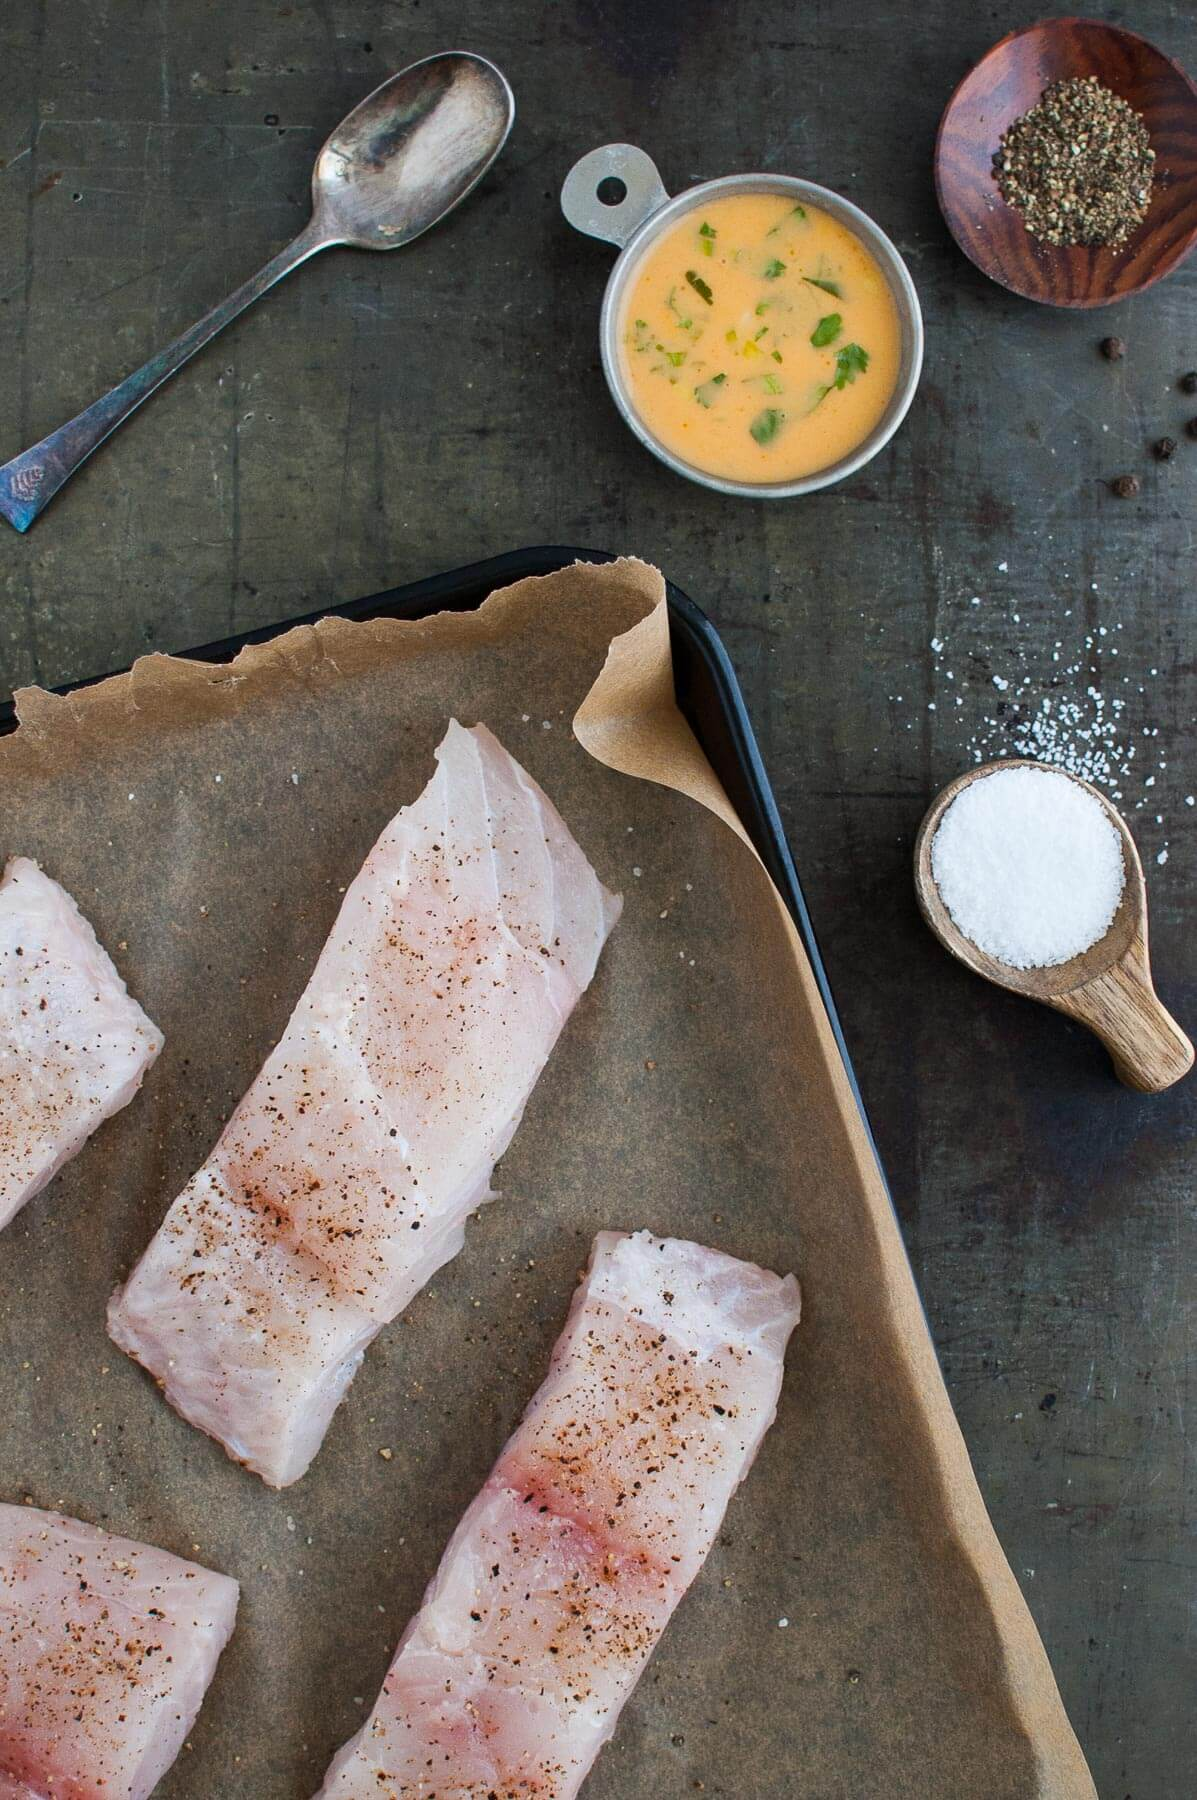 Mahi-mahi fillets with Thai coconut curry sauce, salt, and pepper.